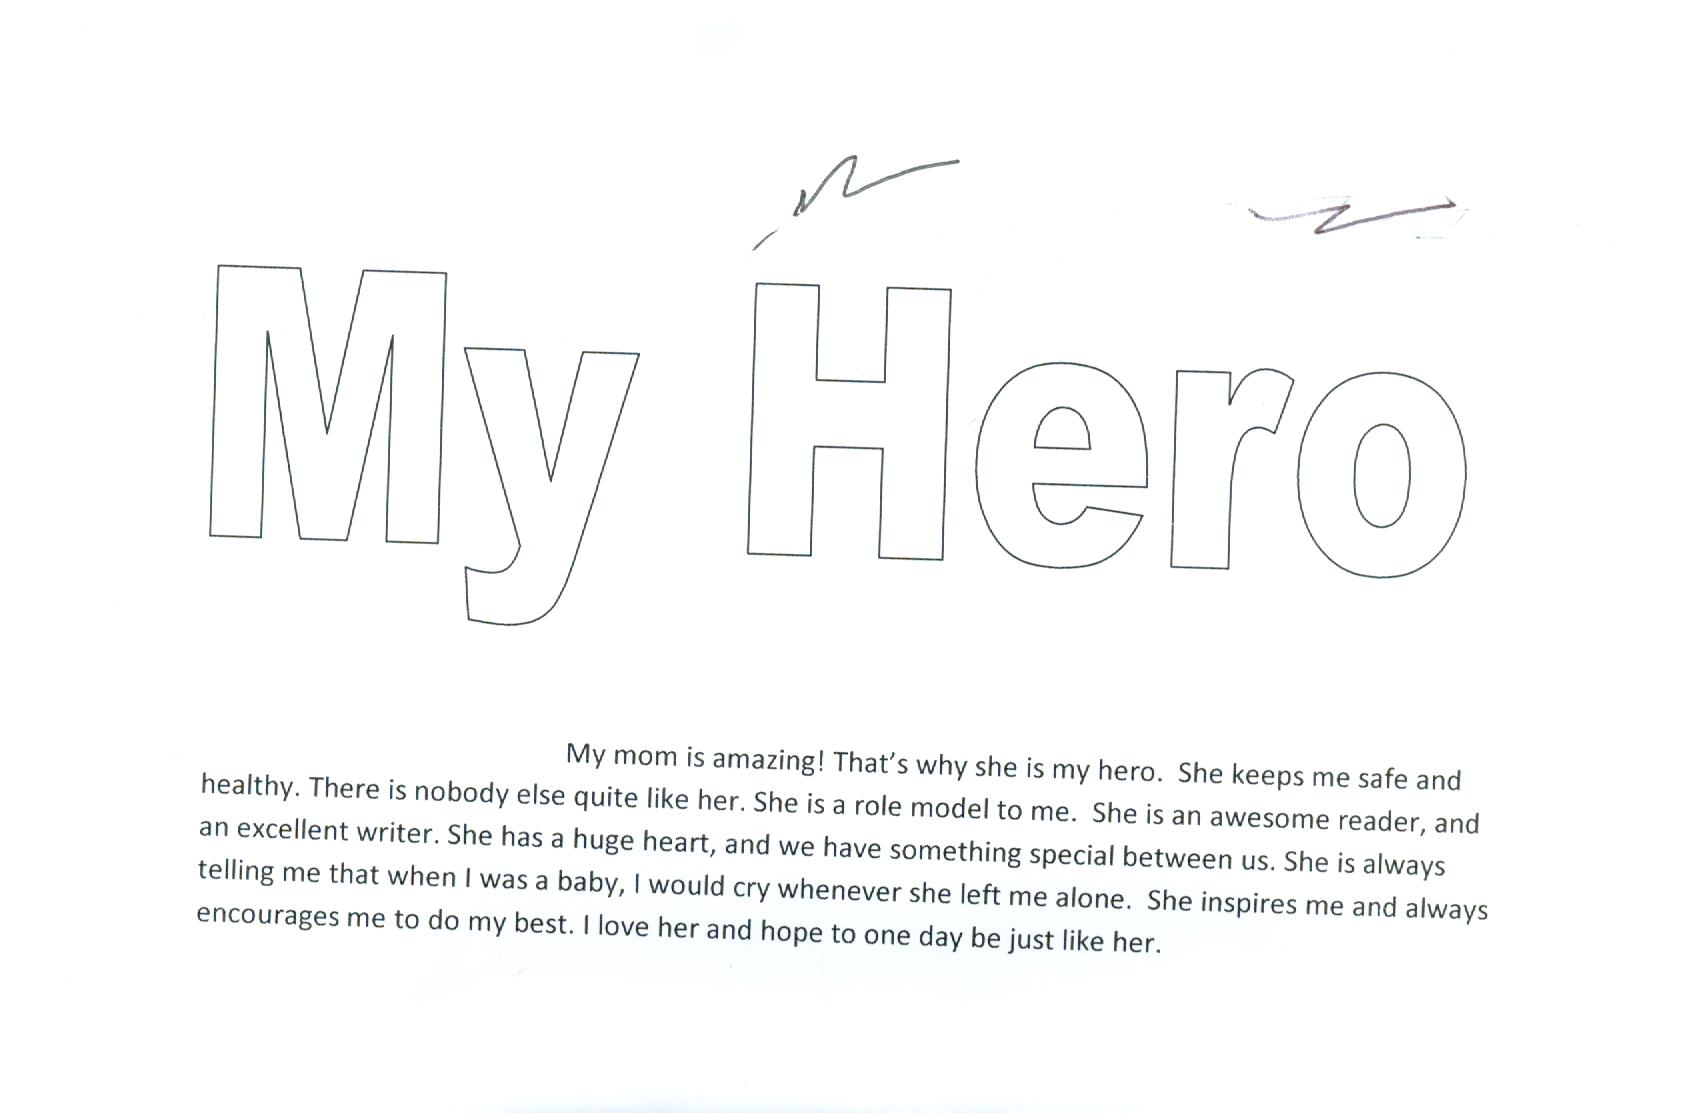 011 Hero Essay Audiehero My Is About Superhero In Hindi Father Inspiration Why On Short Favorite Unusual Parents Full